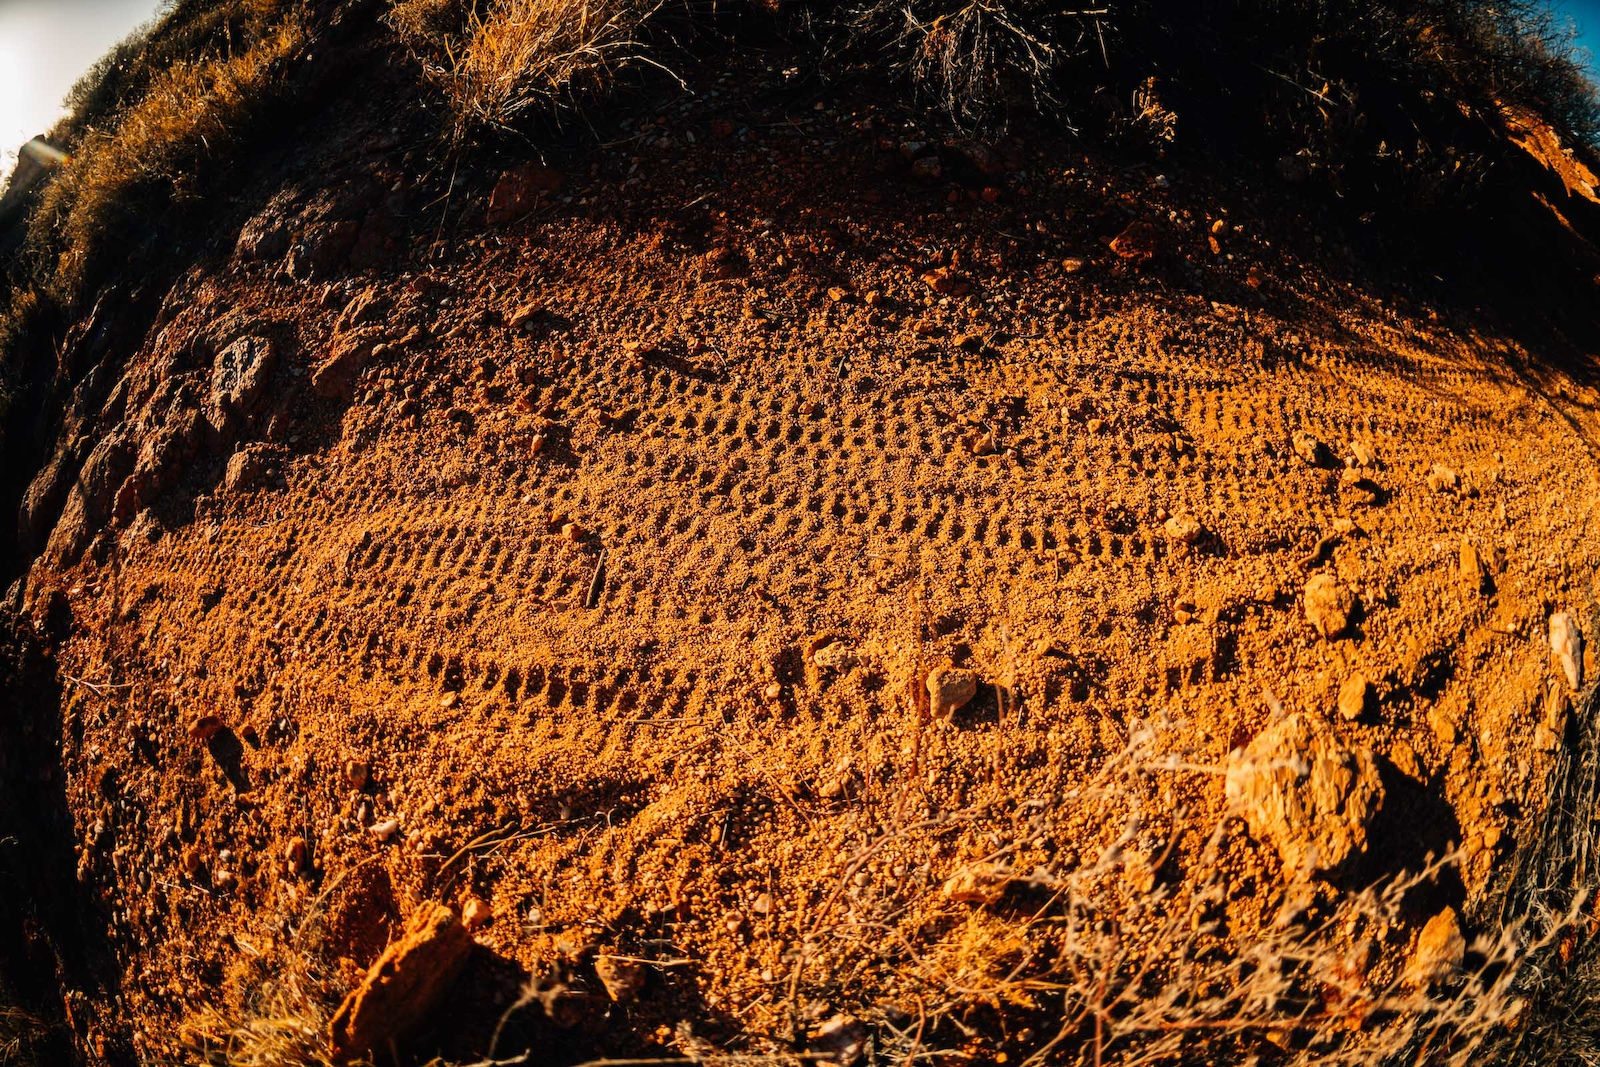 Trail surface of the desert reliably loose.